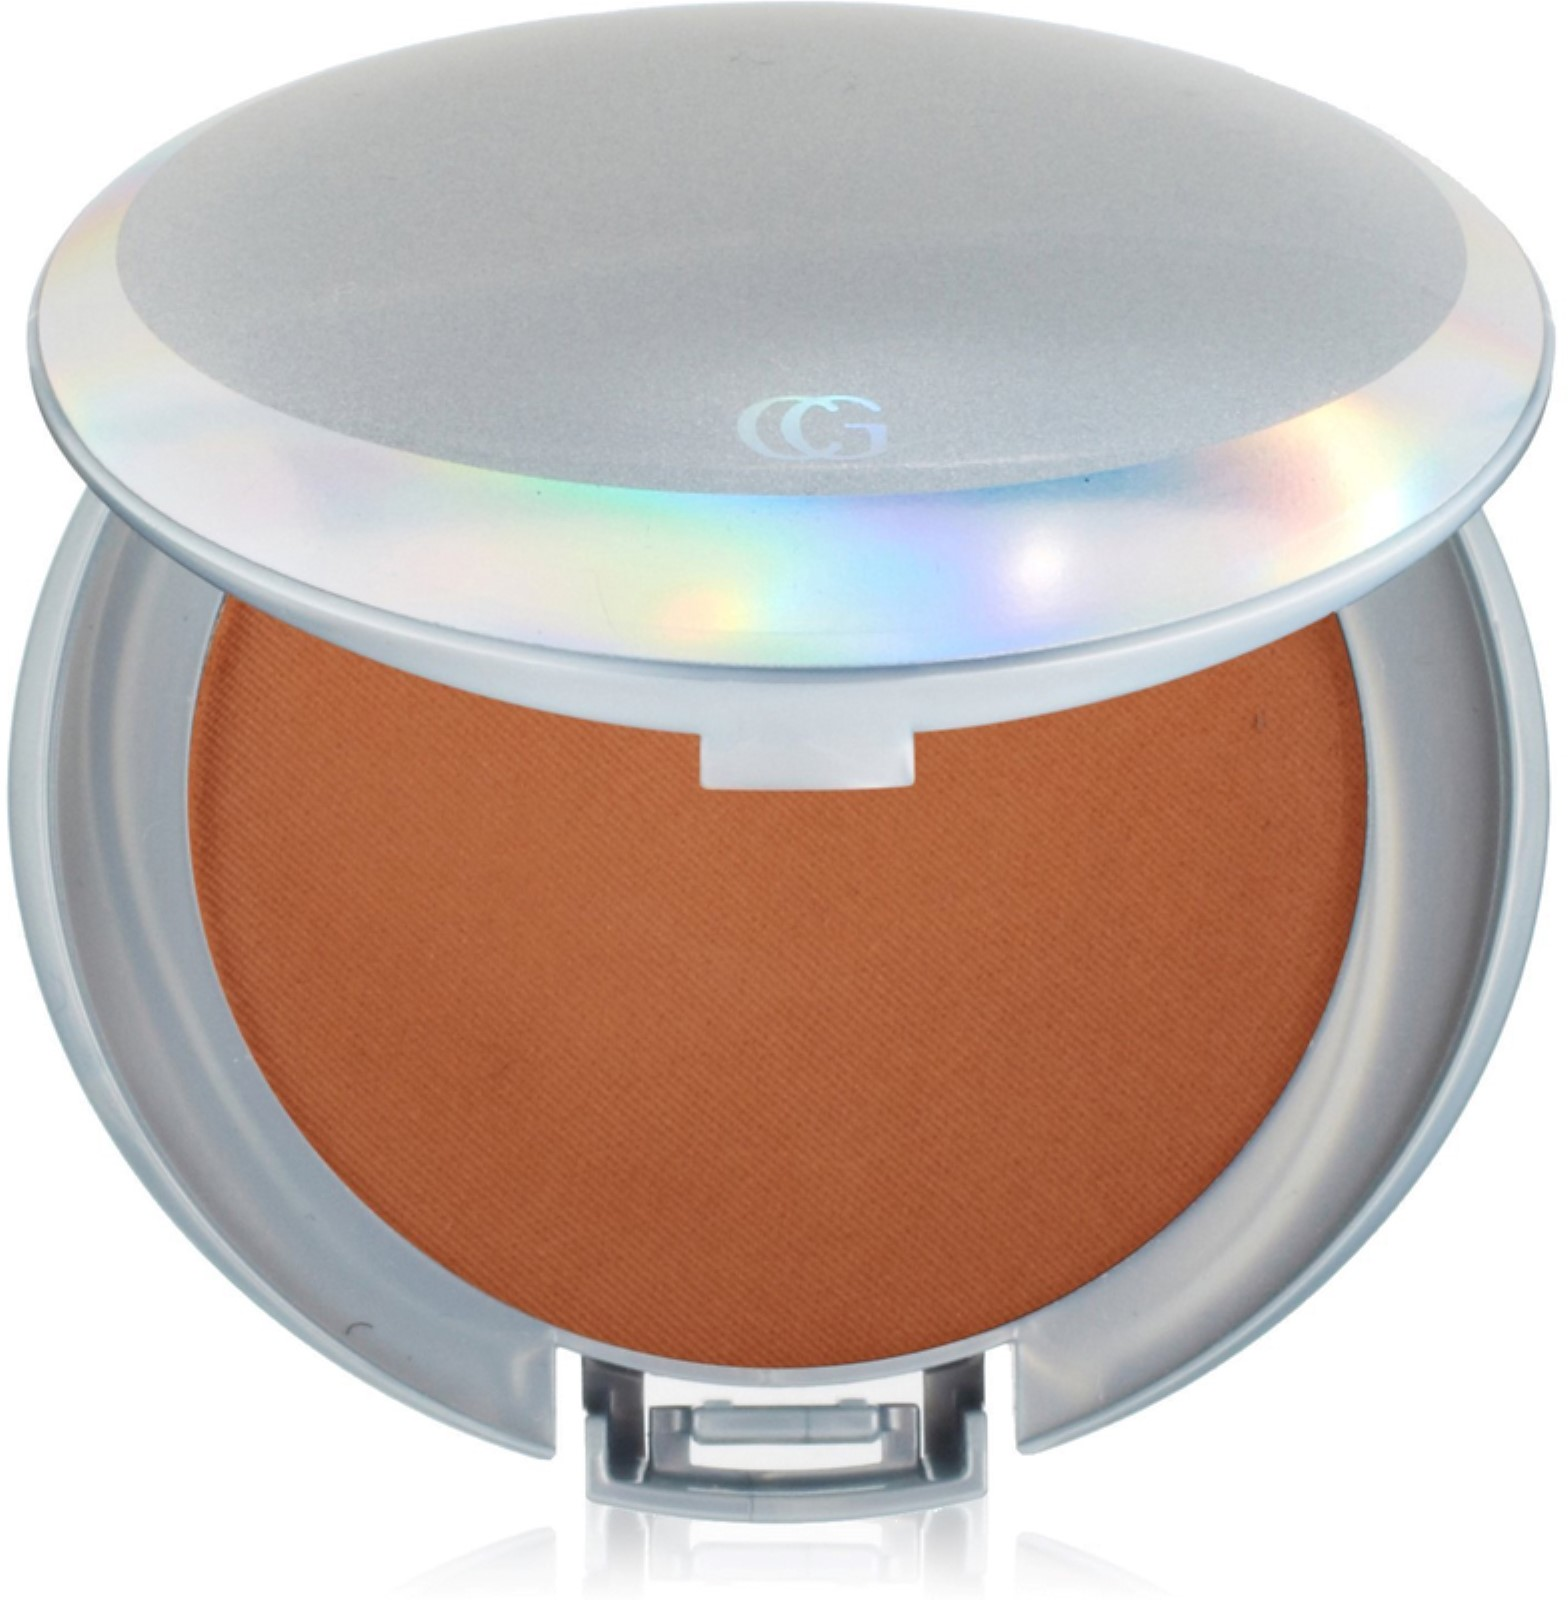 CoverGirl Advanced Radiance Age-Defying Pressed Powder, Toasted Almond [130], 0.39 oz (Pack of 4)